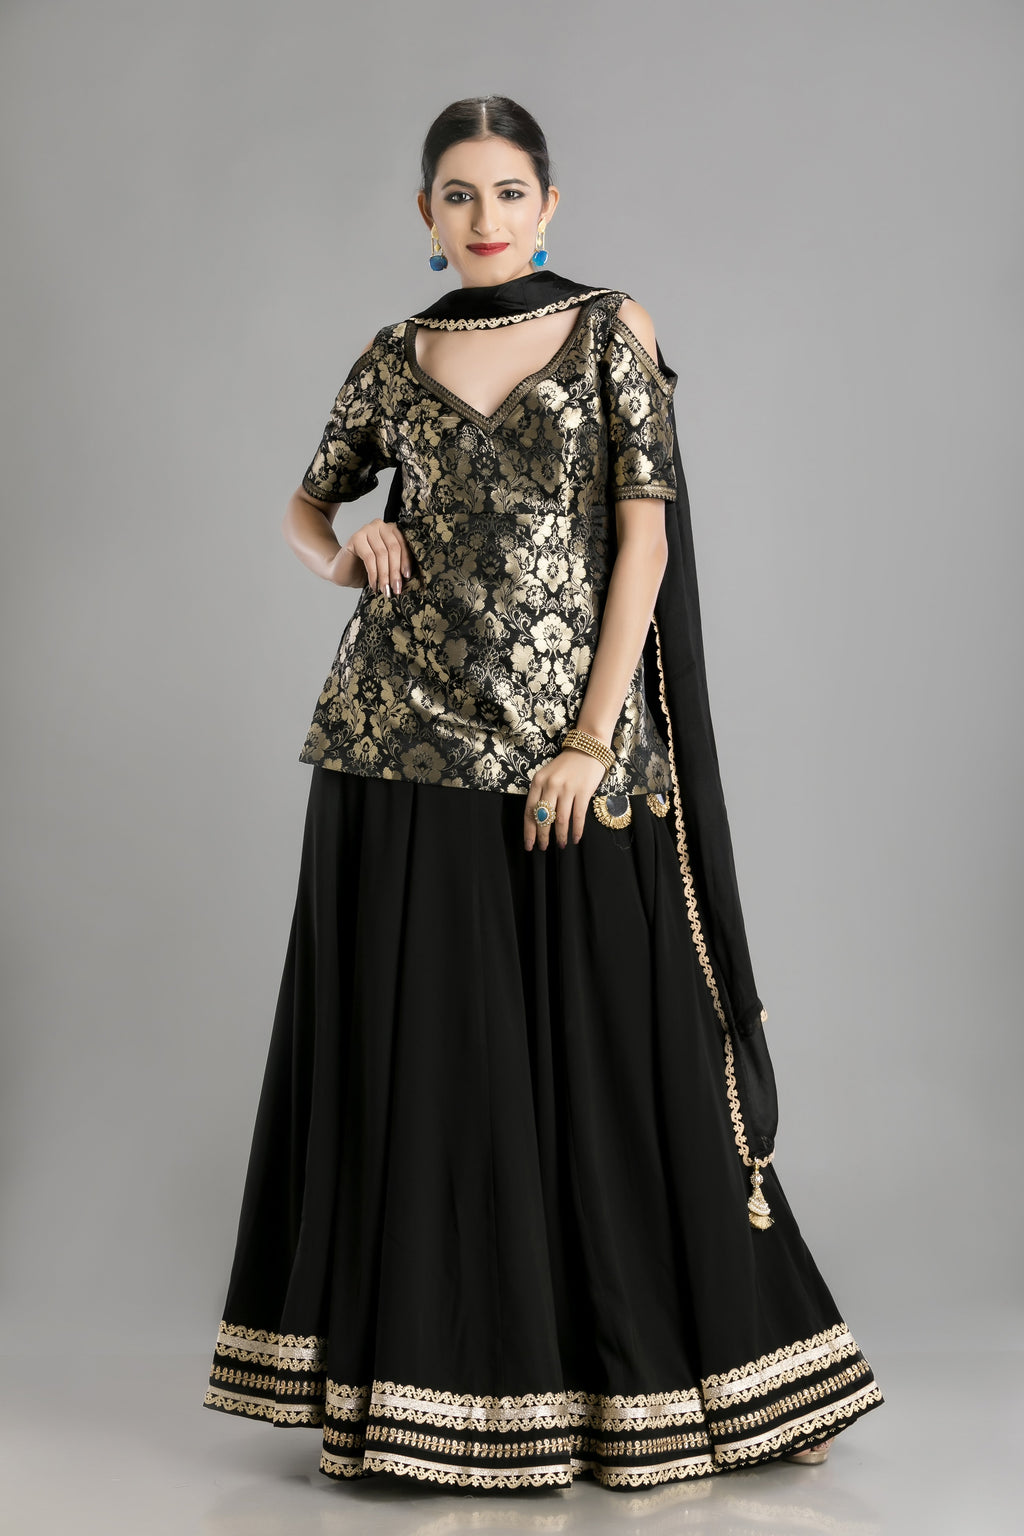 Midnight Muse-The Black and Gold Lehenga and Kameez